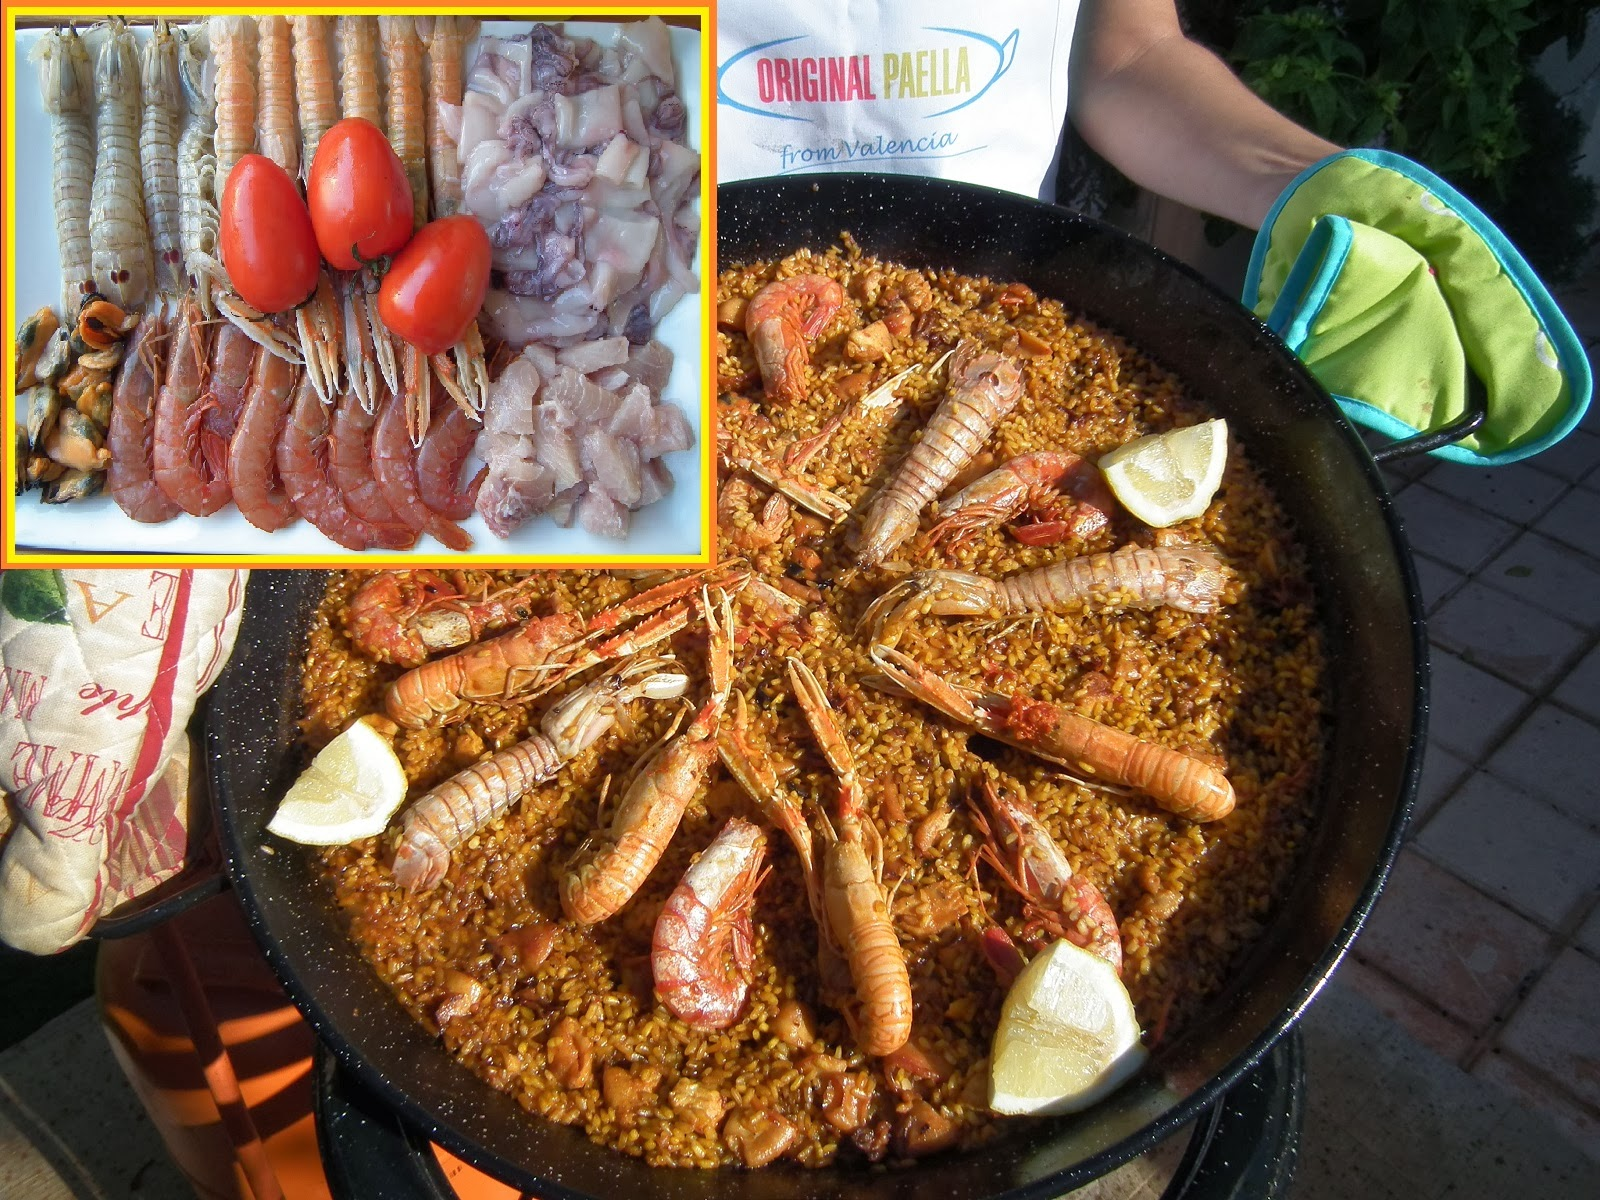 the original seafood paella recipe from Valencia Spain